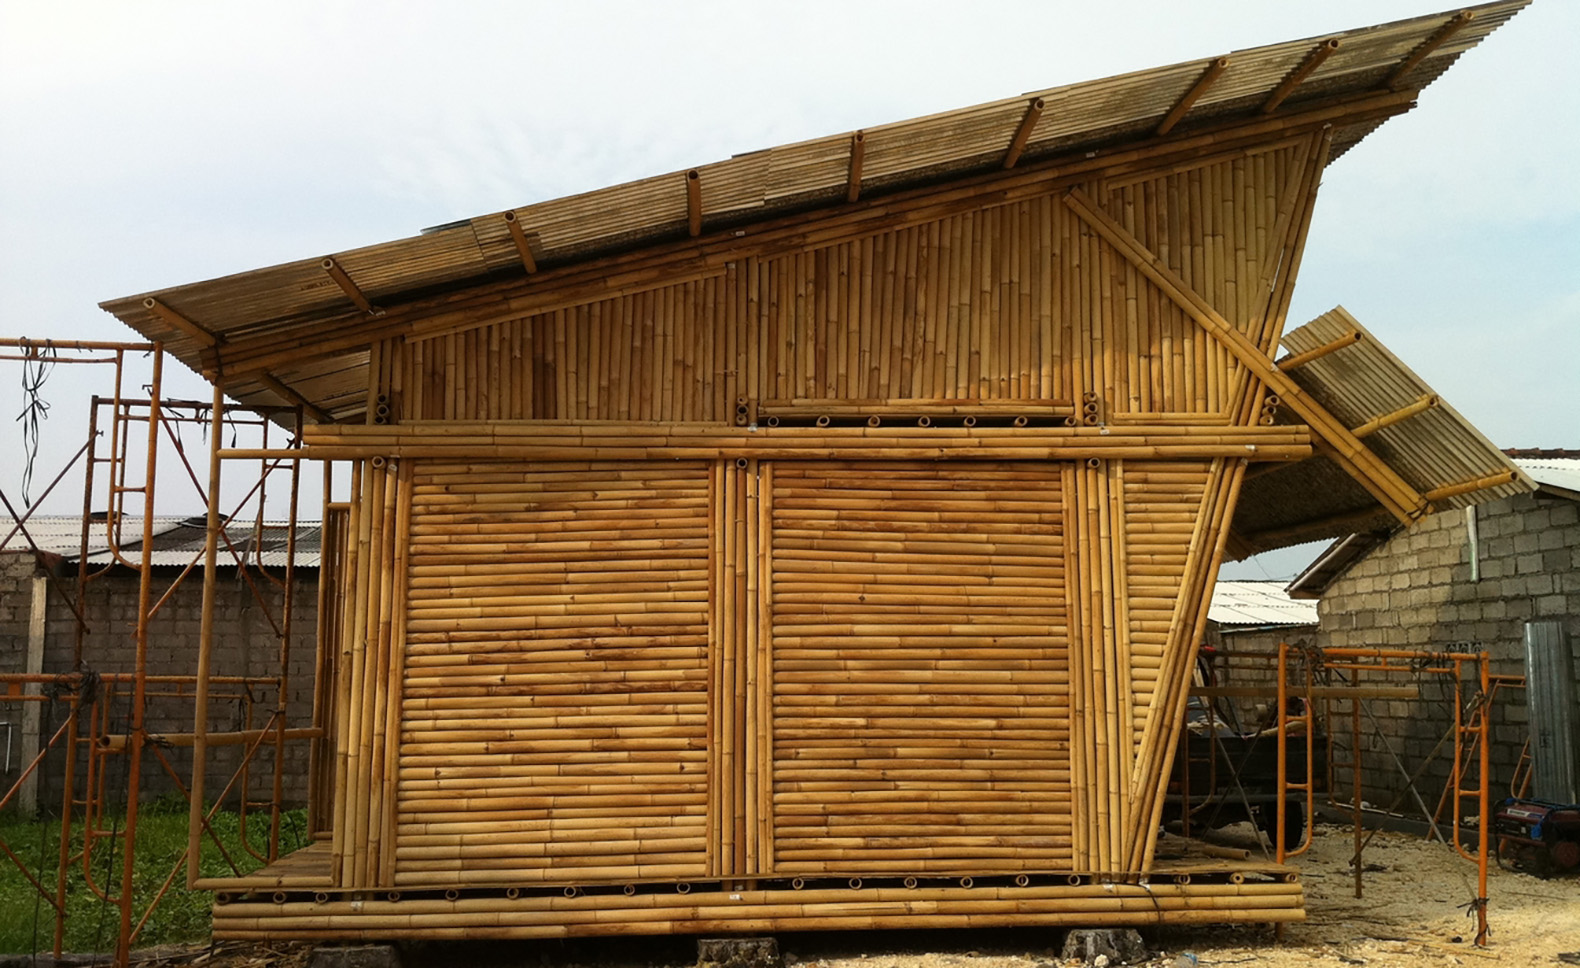 bamboo housing Housing design permits good ventilation to cool the environment during the hottest months of the year highs ceiling protect the structure and the walls from the sun and rain one thousand to 1,200 six-meter bamboo posts or stalks are needed to build each house.